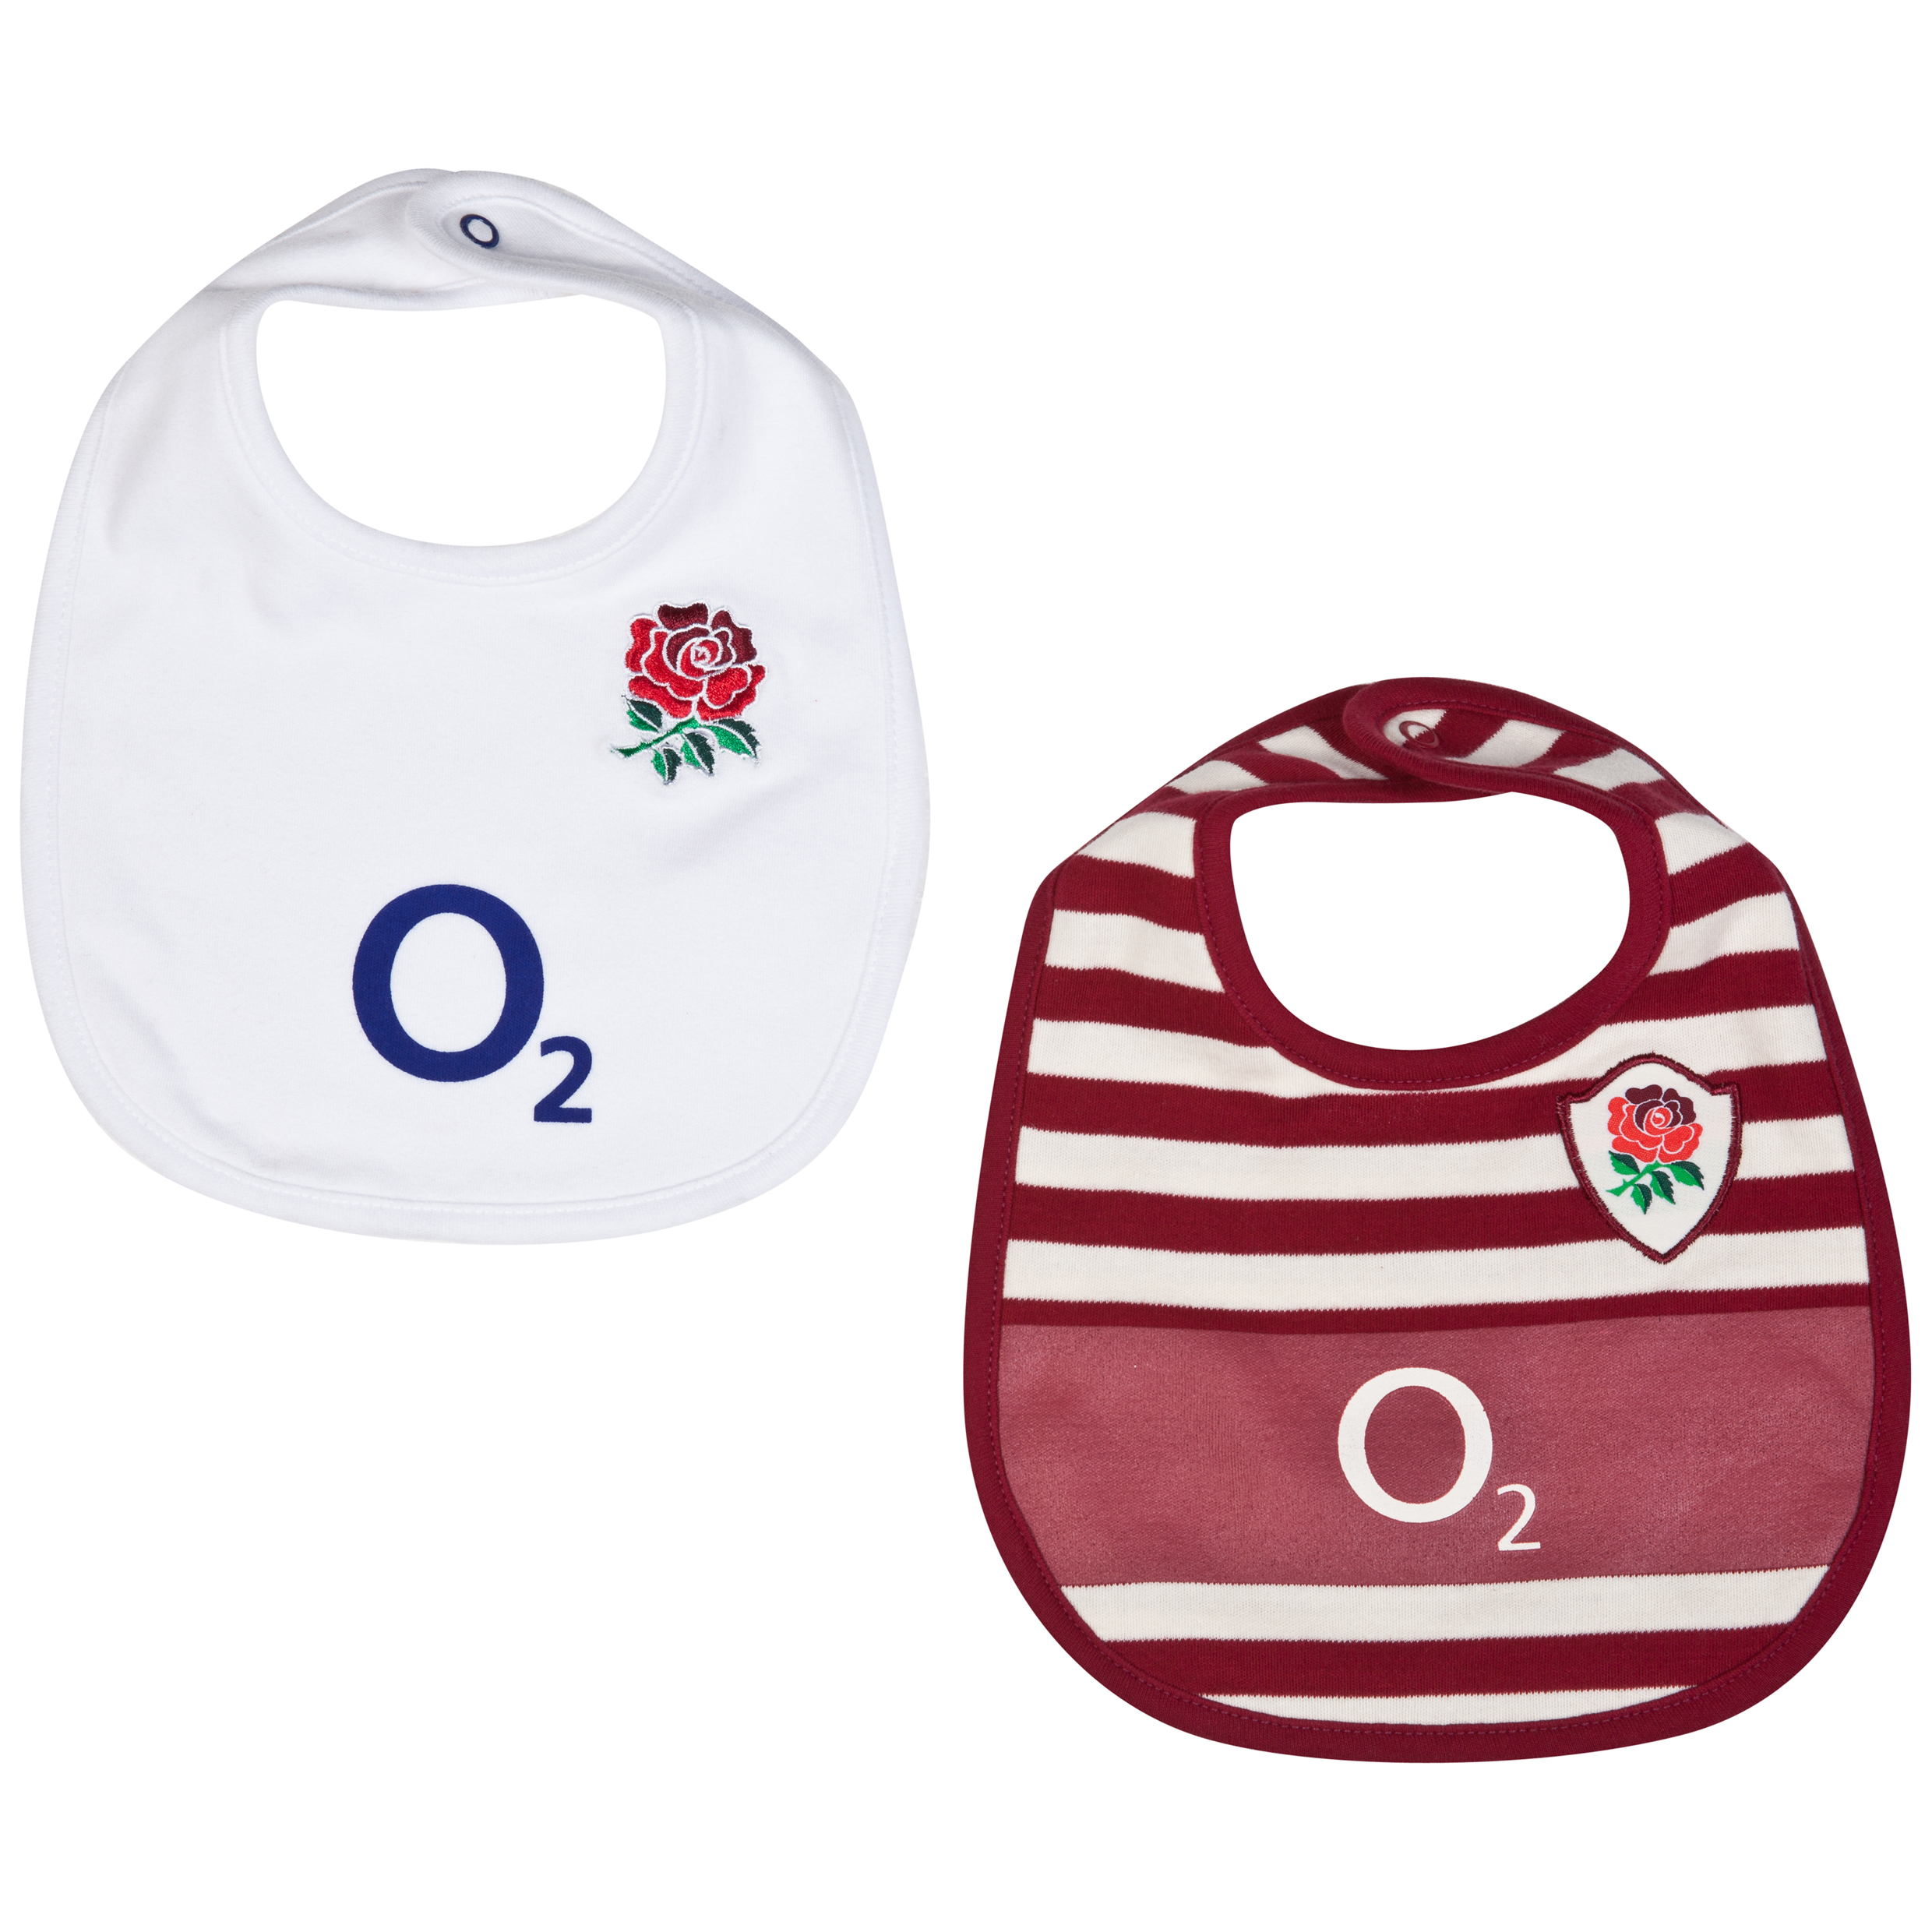 England Rugby Kit 2 Pack Bibs 2013/14 Multi